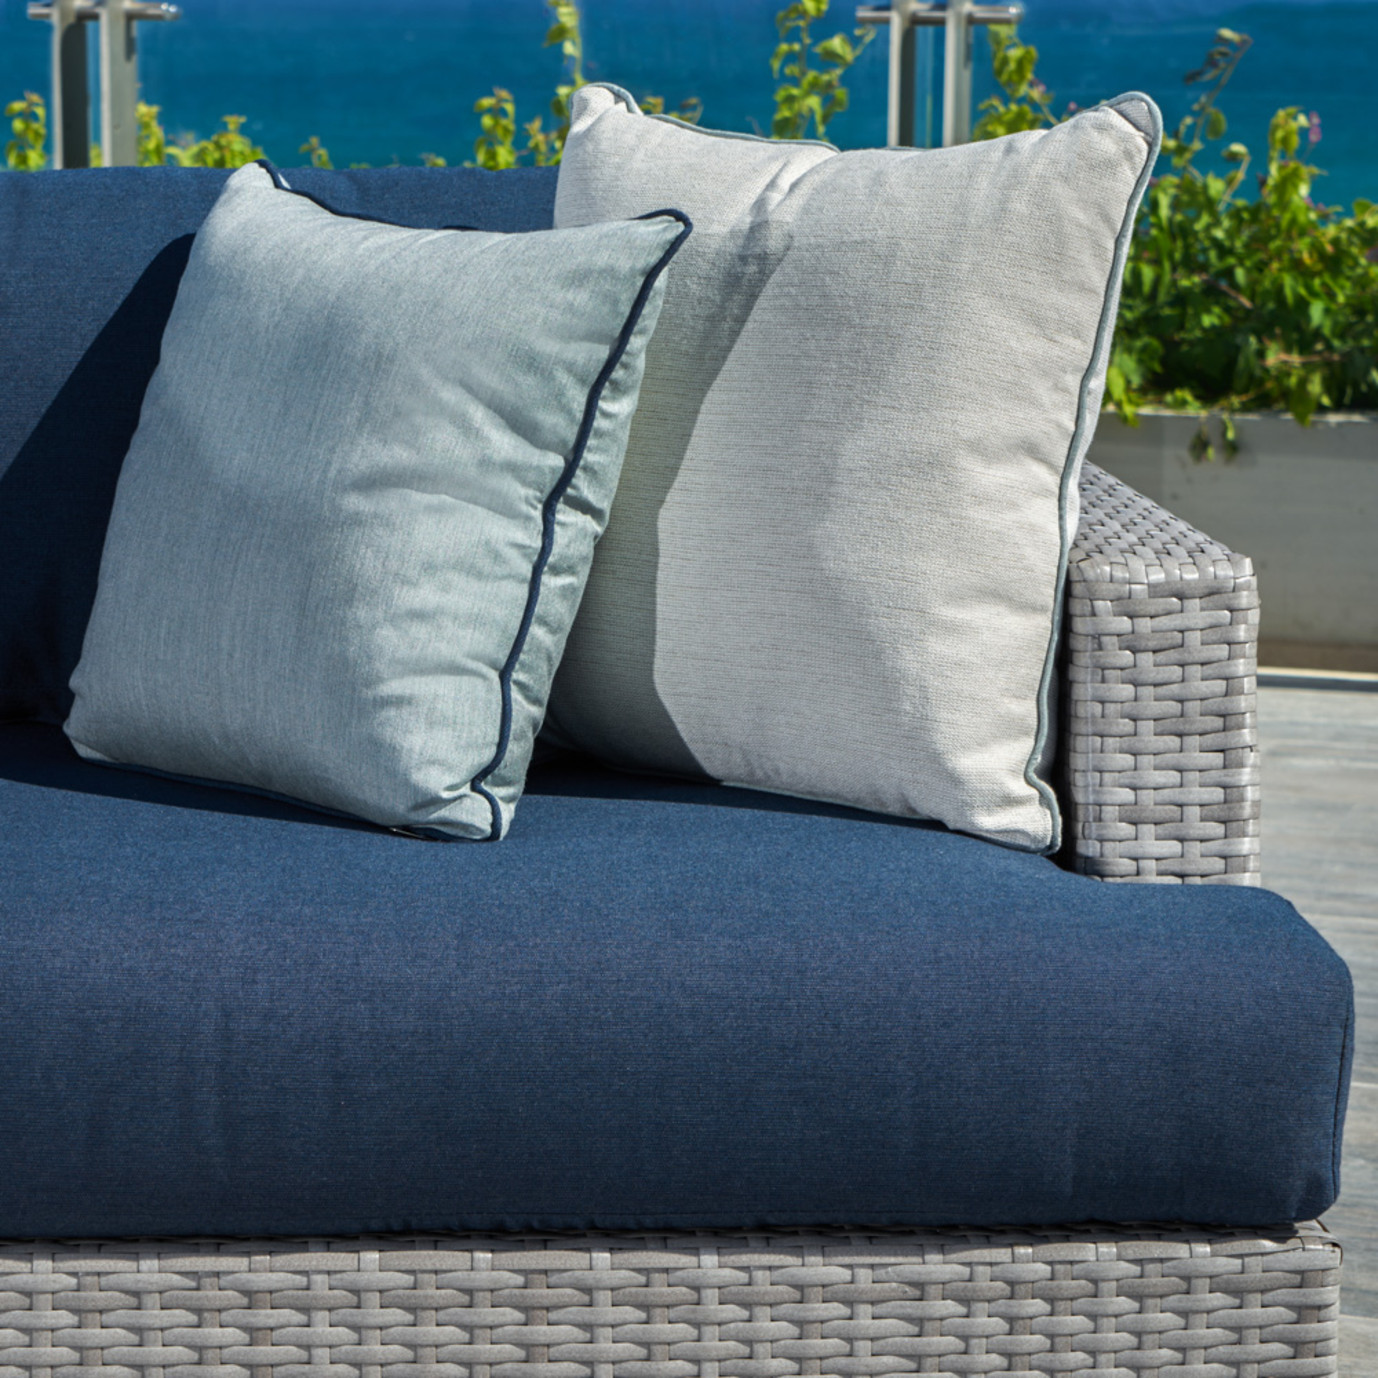 Portofino™ Comfort 71in Loveseat - Laguna Blue